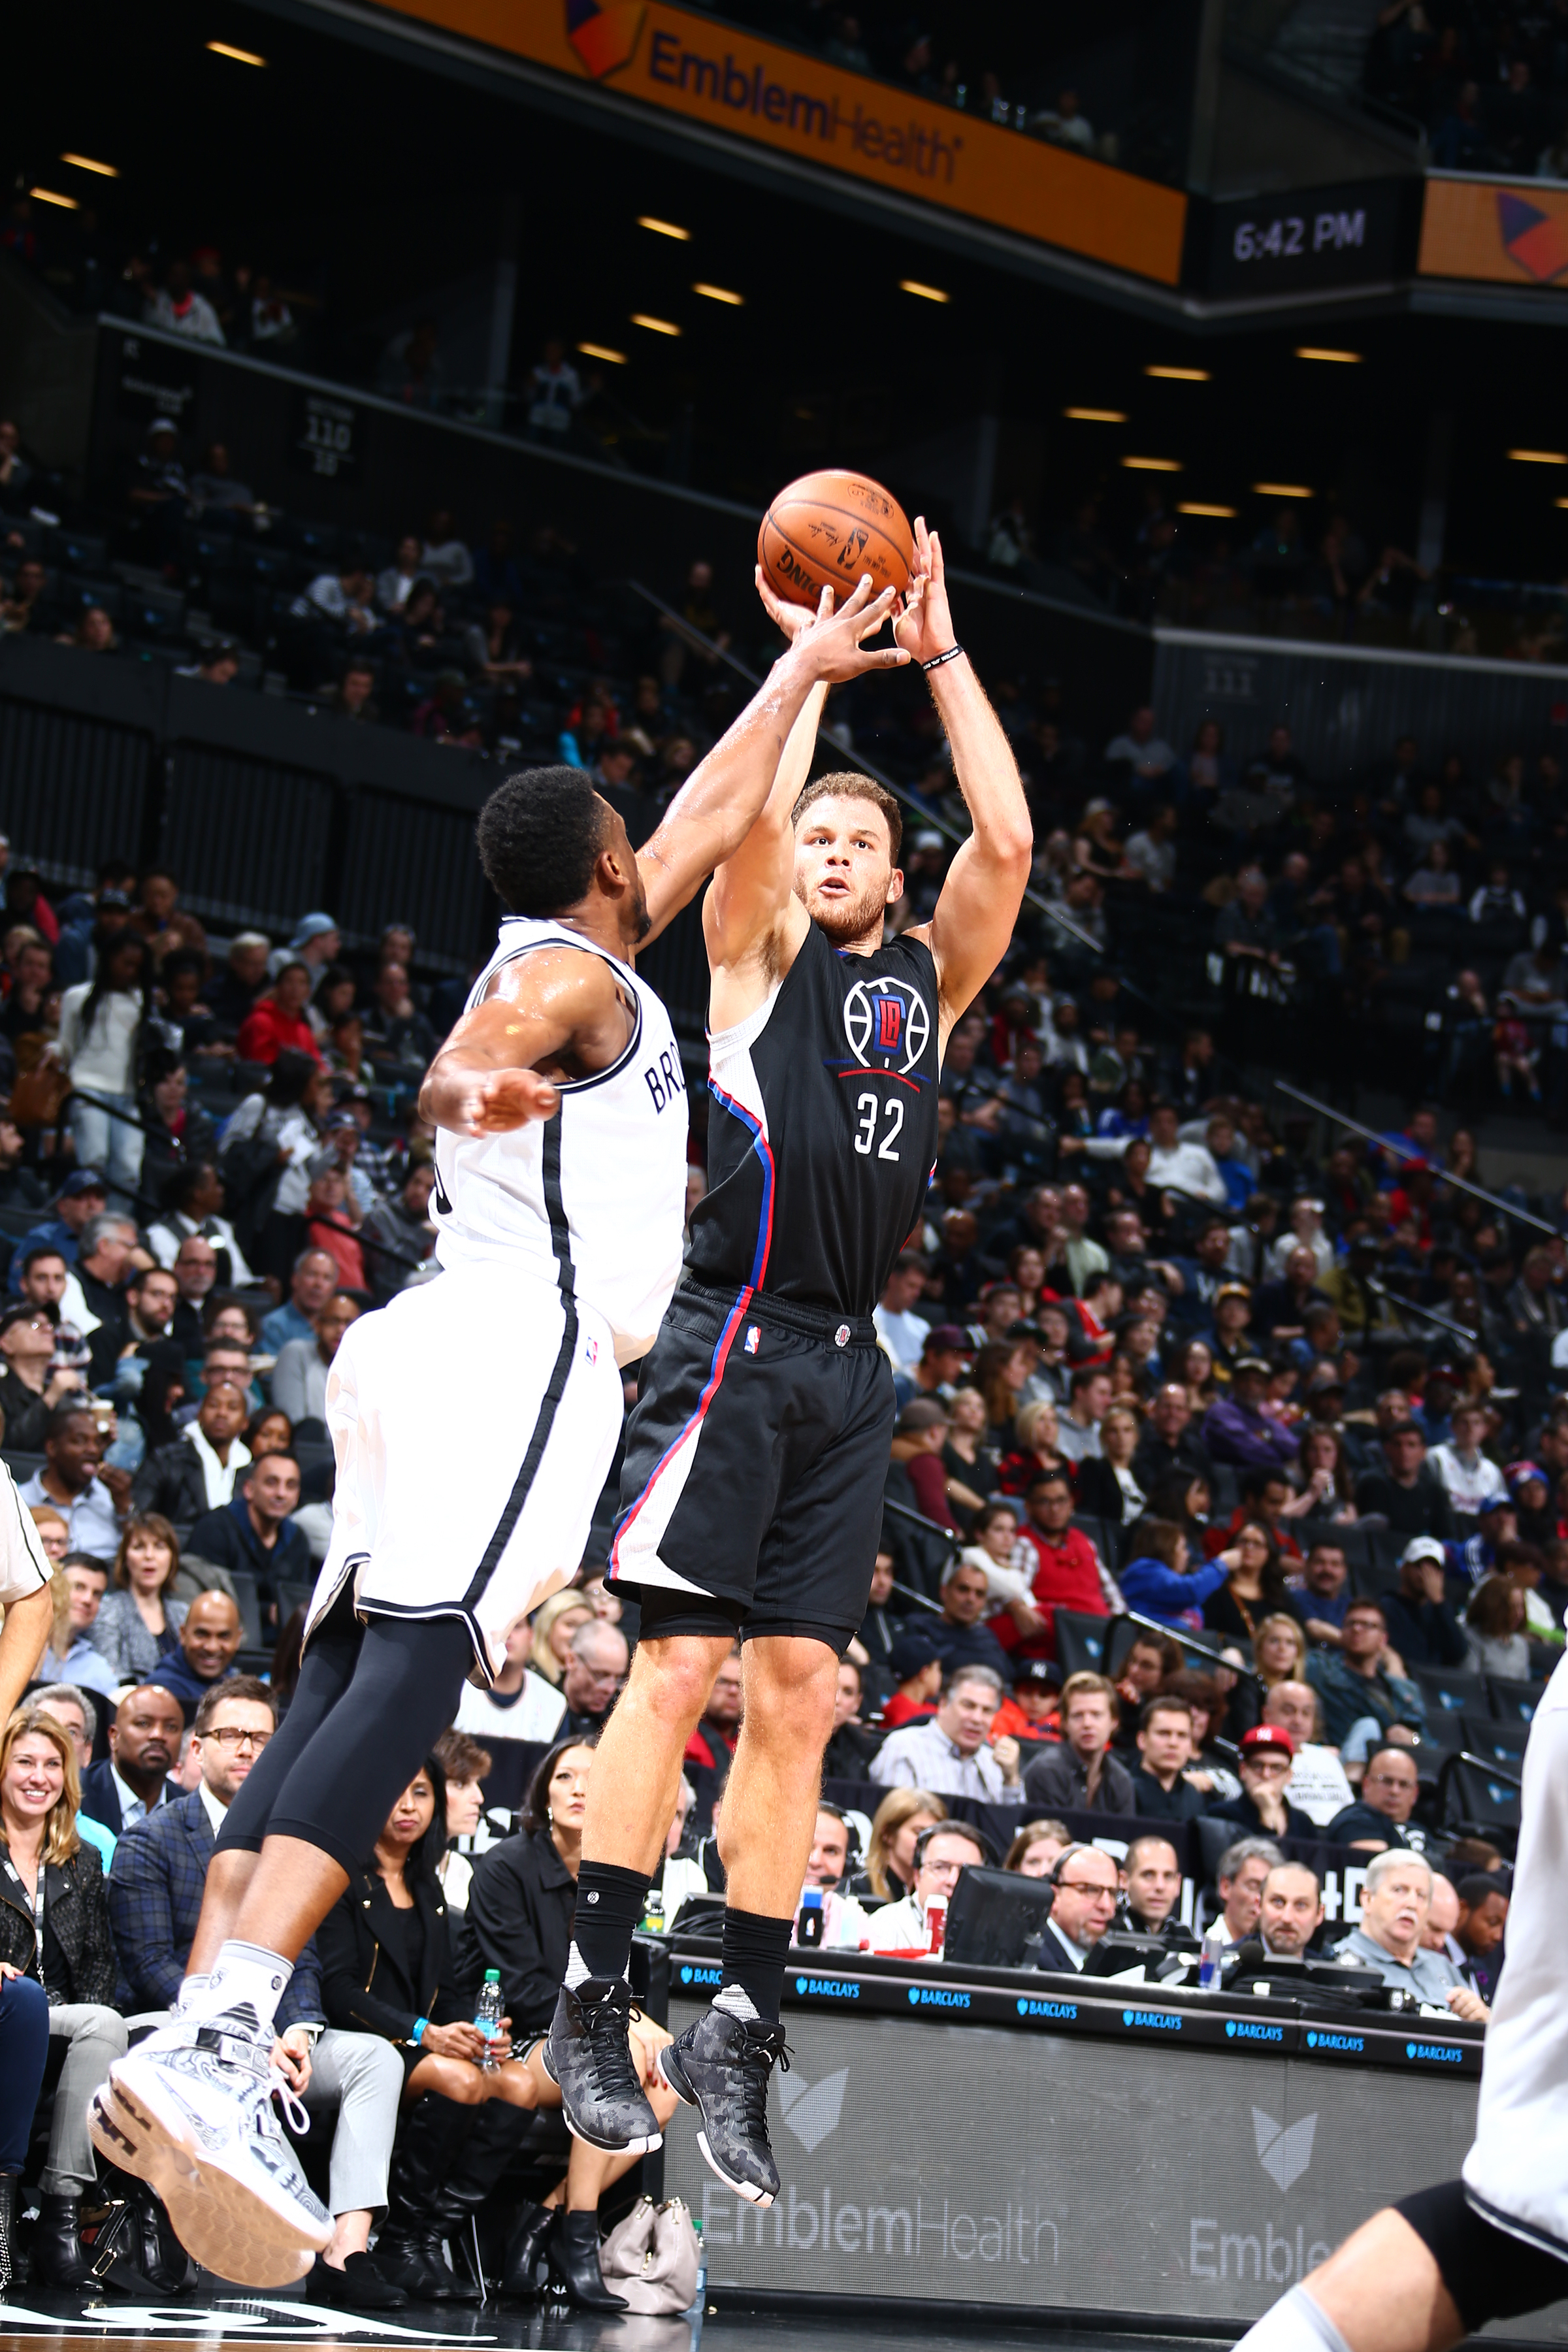 BROOKLYN, NY - DECEMBER 12:  Blake Griffin #32 of the Los Angeles Clippers shoots the ball against the Brooklyn Nets on December 12, 2015 at Barclays Center in Brooklyn, New York. (Photo by Nathaniel S. Butler/NBAE via Getty Images)